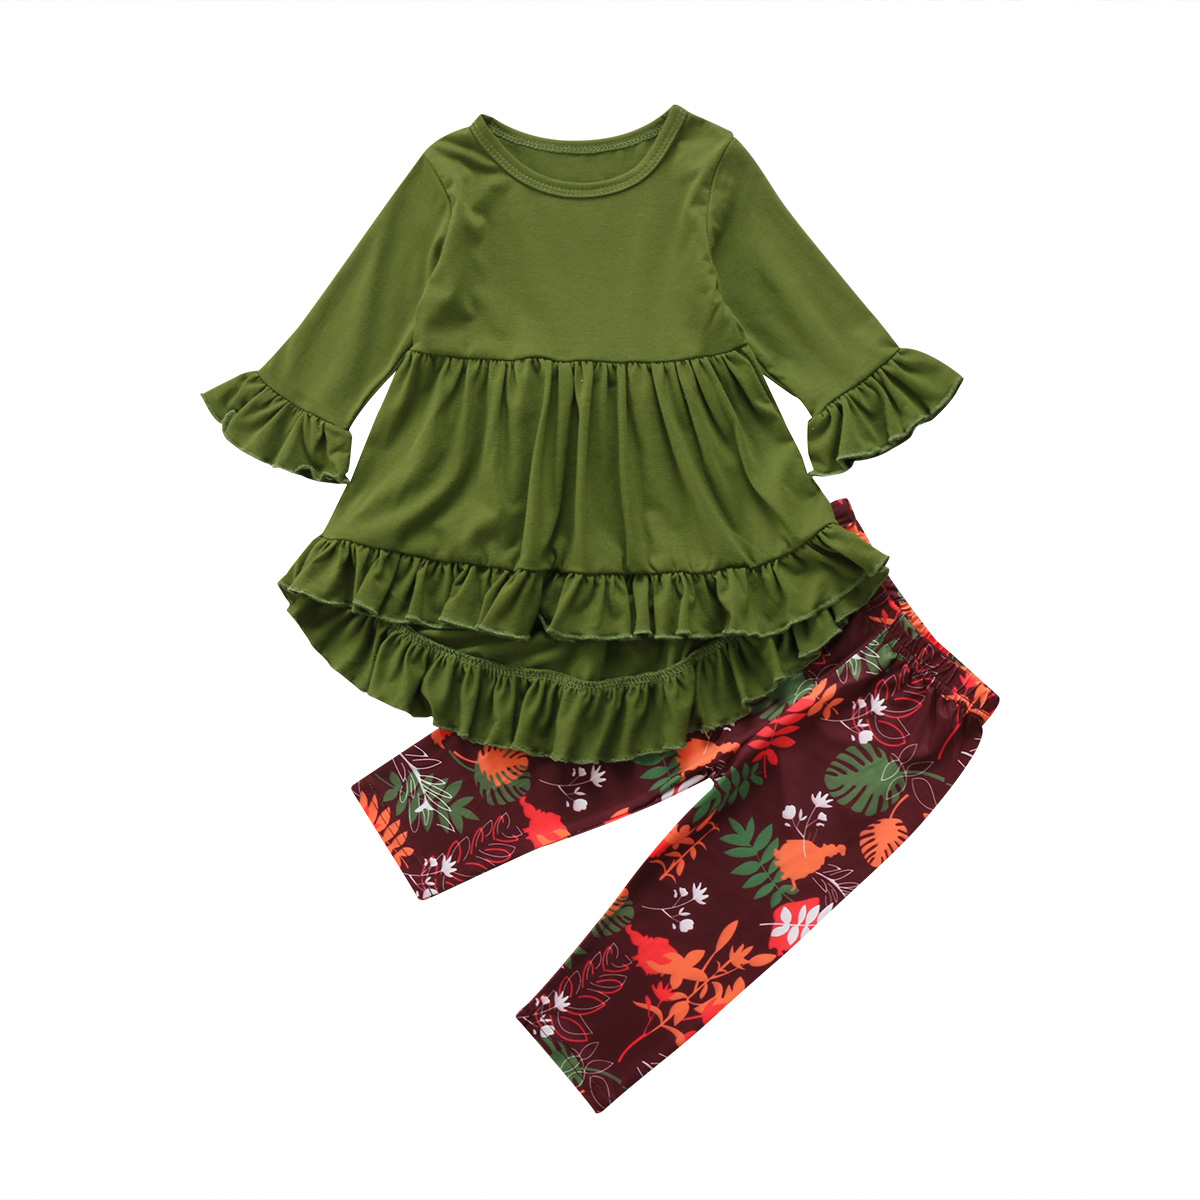 7f831bc7e3e4 Casual Toddler Kids Girls Tops Floral Pants Leggings Outfits Clothes Set  Adorable Baby Dark Green Top Autumn Floral Clothing Set-in Clothing Sets  from ...